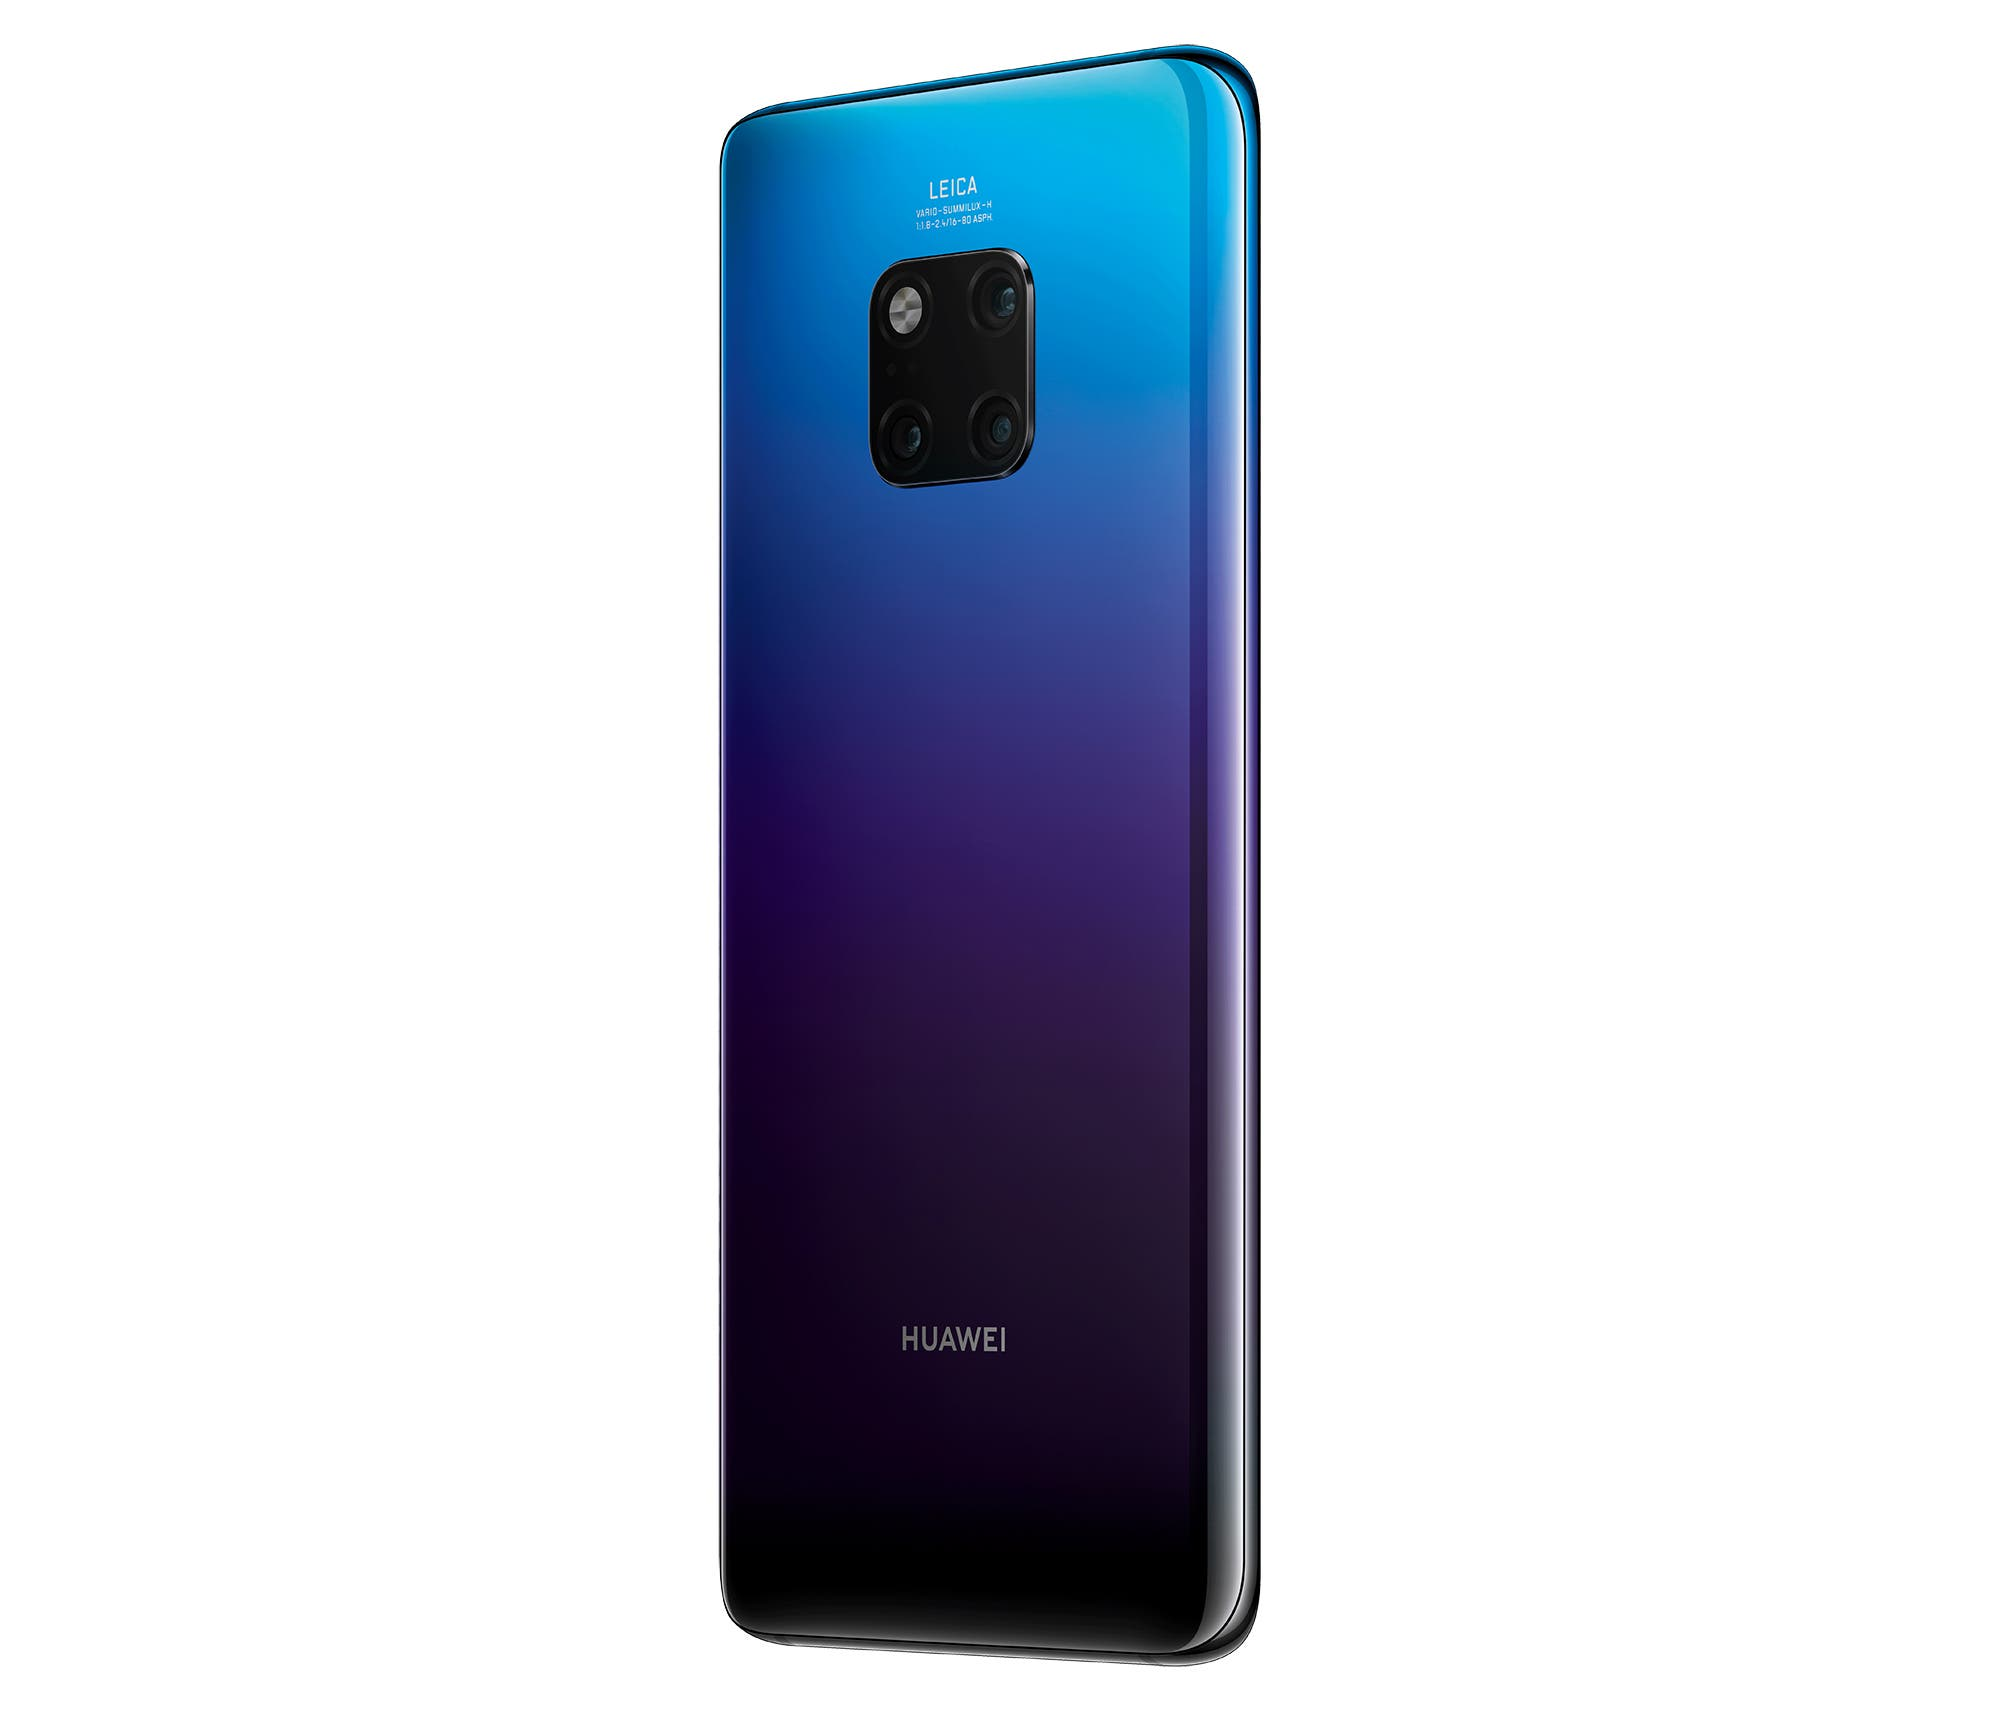 New HUAWEI Mate 20 Series Comes with a 16mm Leica Ultra Wide Angle Lens